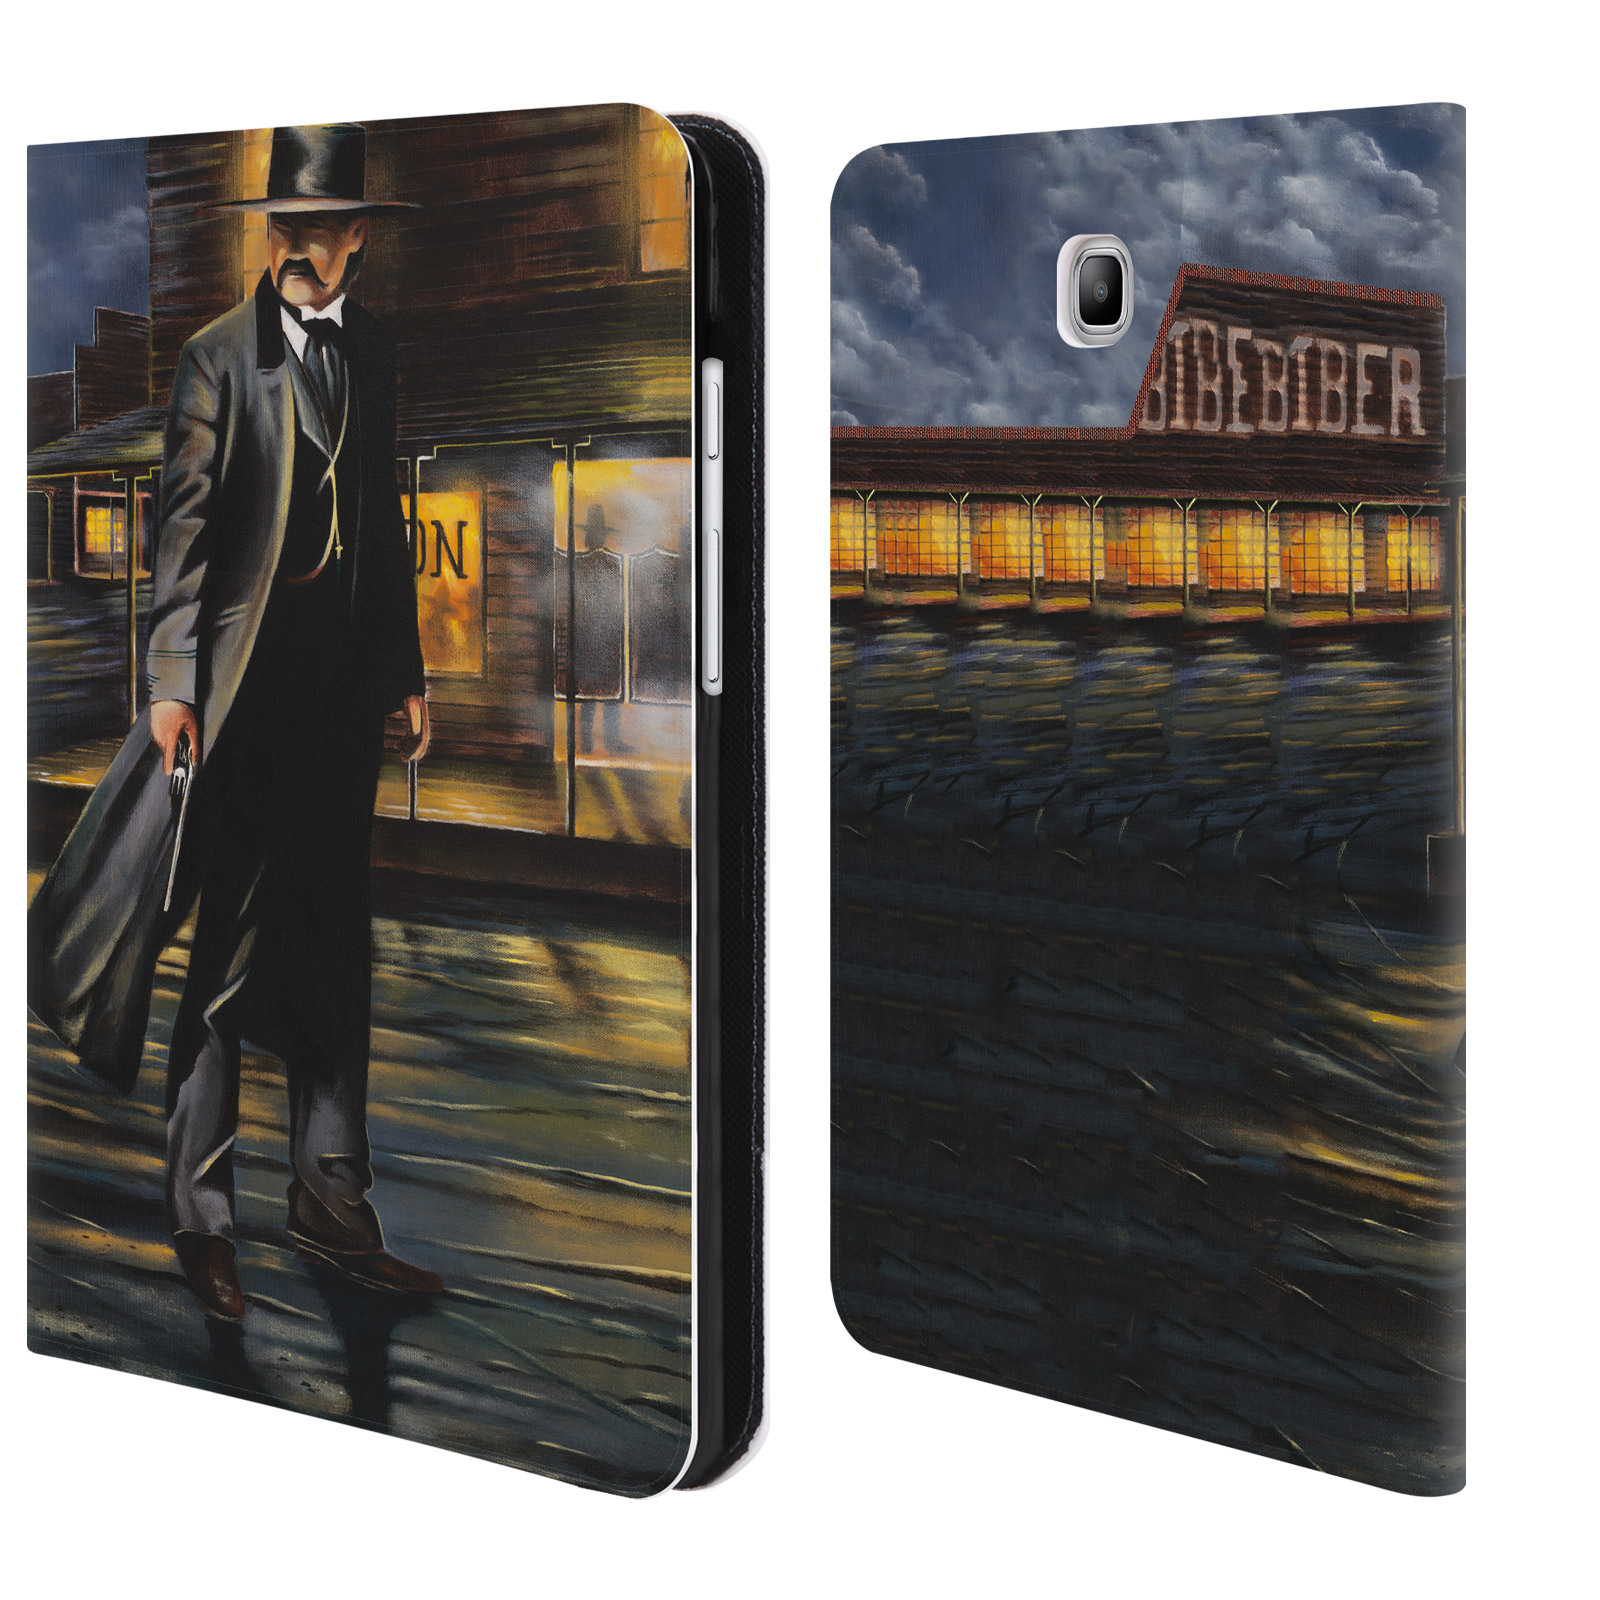 OFFICIAL-GENO-PEOPLES-ART-LIFE-LEATHER-BOOK-CASE-FOR-SAMSUNG-GALAXY-TABLETS